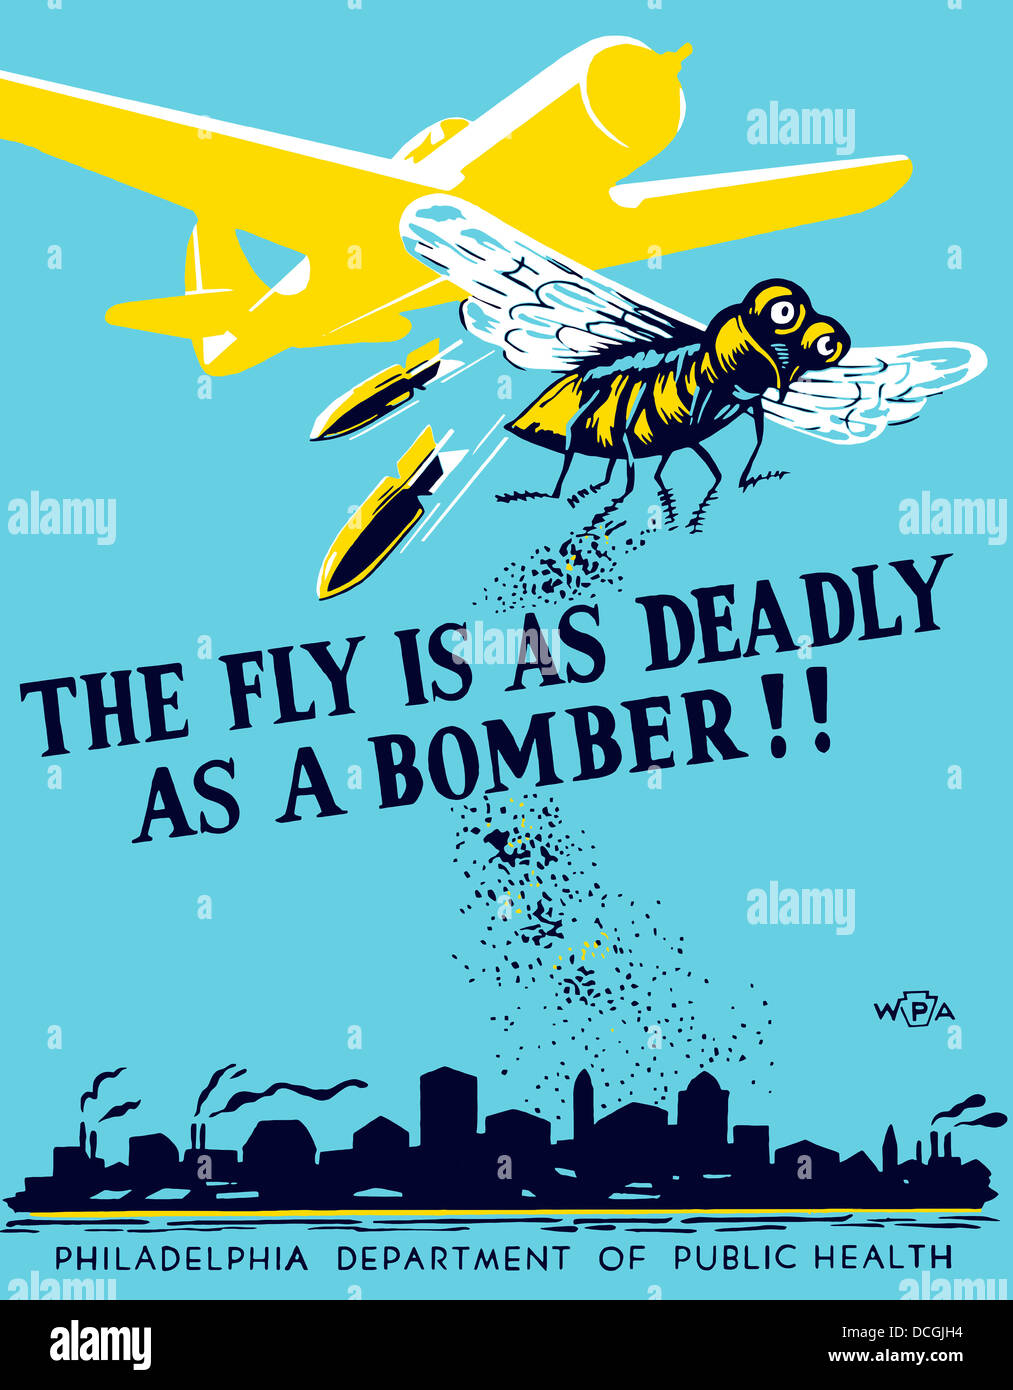 WPA propaganda poster of a bomber plane and a fly dropping germs. - Stock  Image a5b70ace788